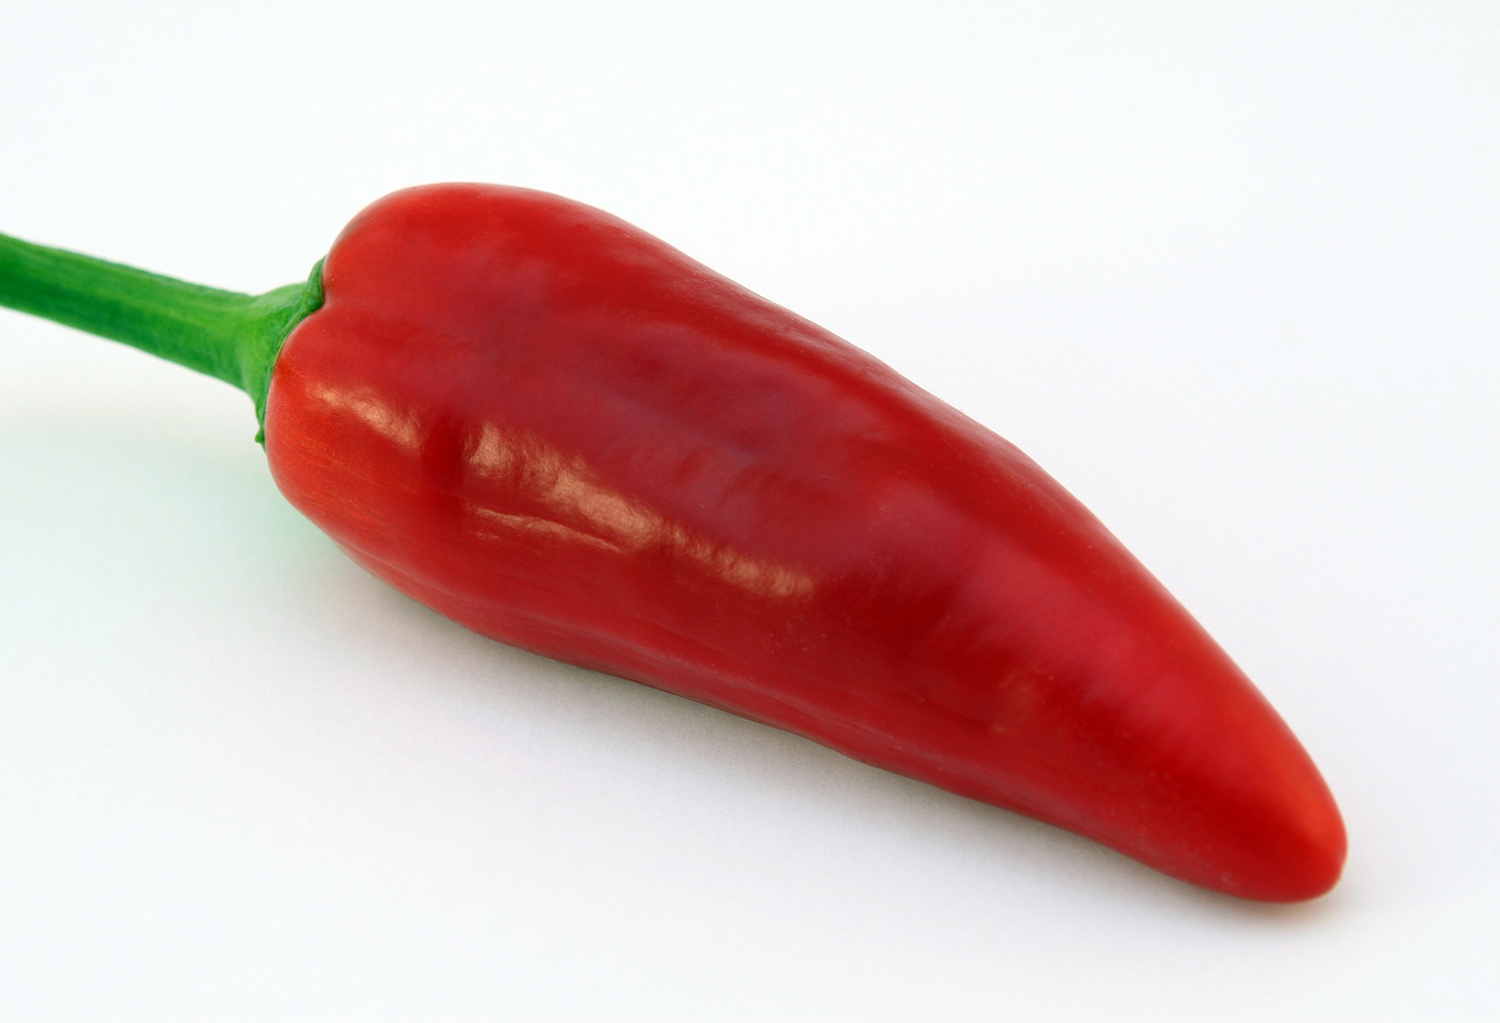 Cayenne Pepper Isolated on White Background